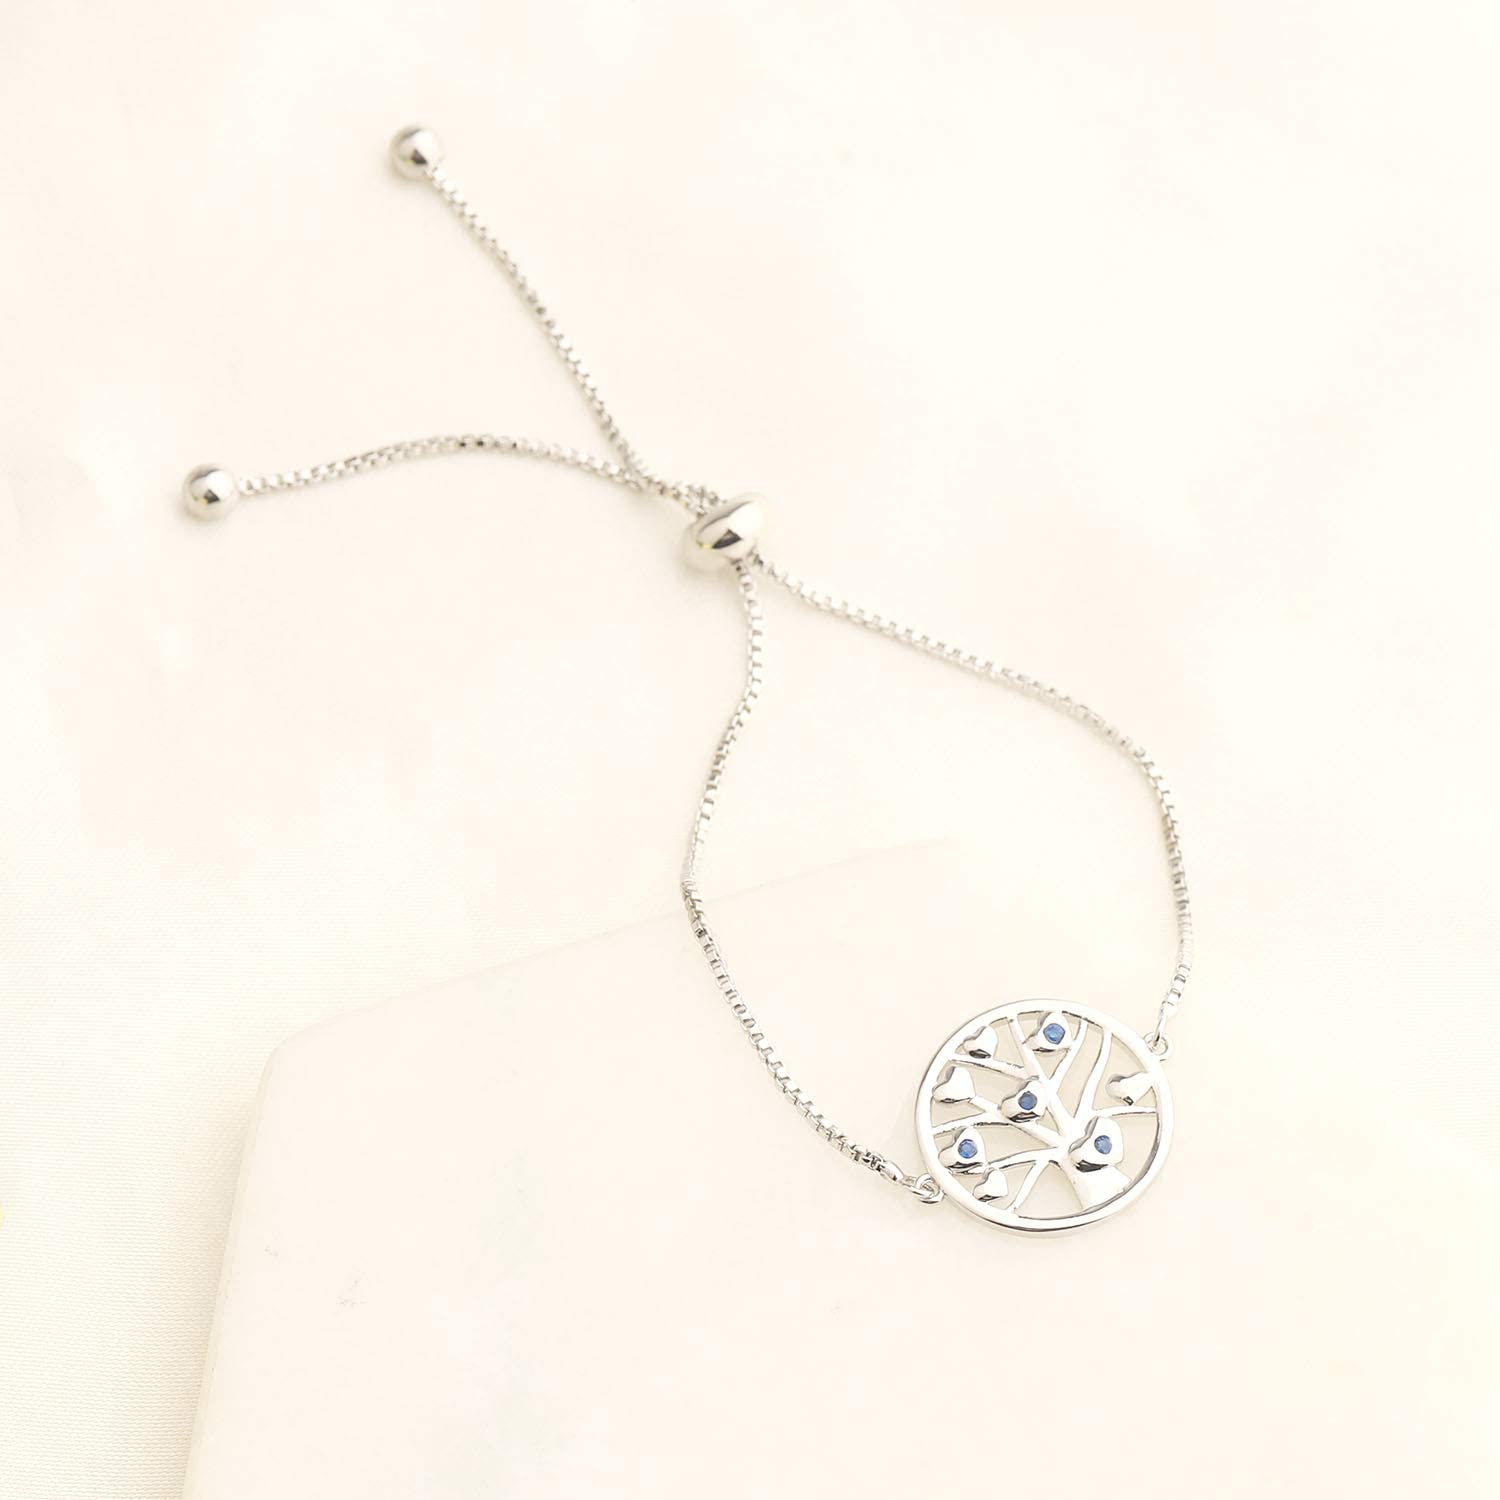 bobauna Family Tree of Life Charm Adjustable Chain Bracelet Meaningful Inspirational Jewelry Gift for Family Best Friends